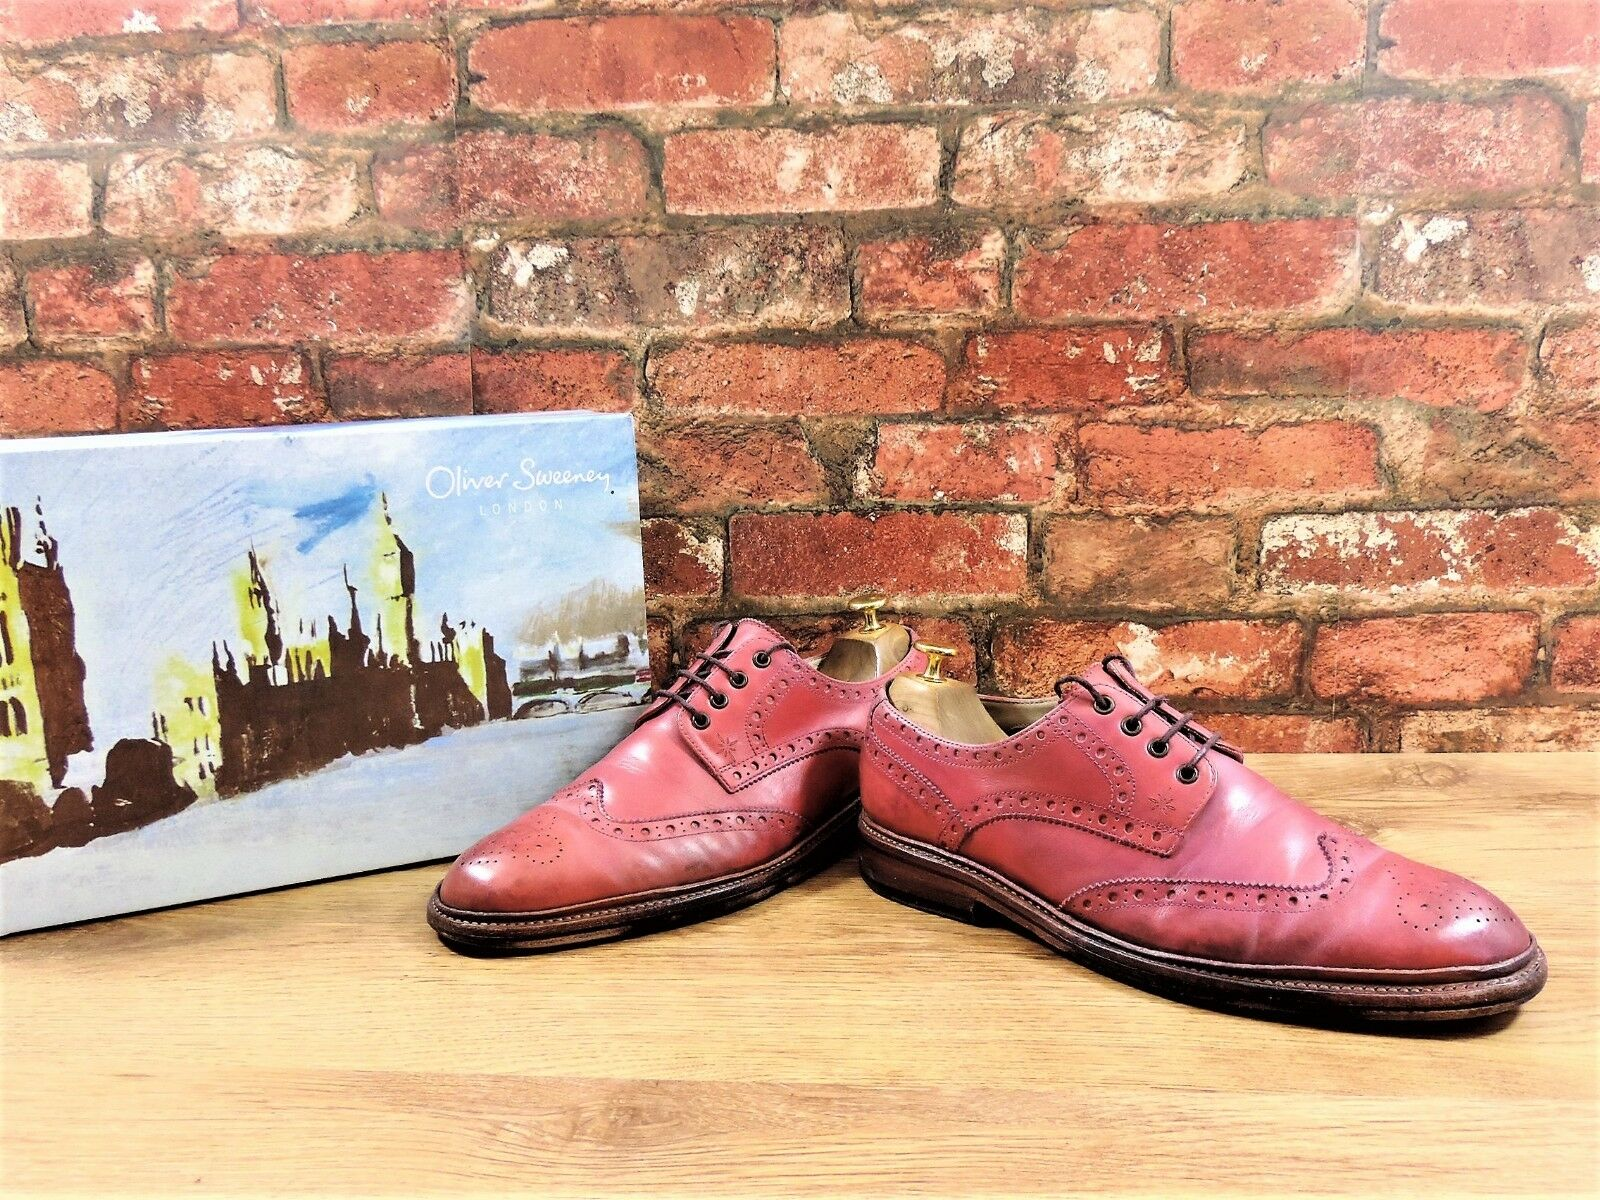 Oliver Sweeney Brogues Red UK 9 US 10 EU 44 Boxed Goodyear Welted